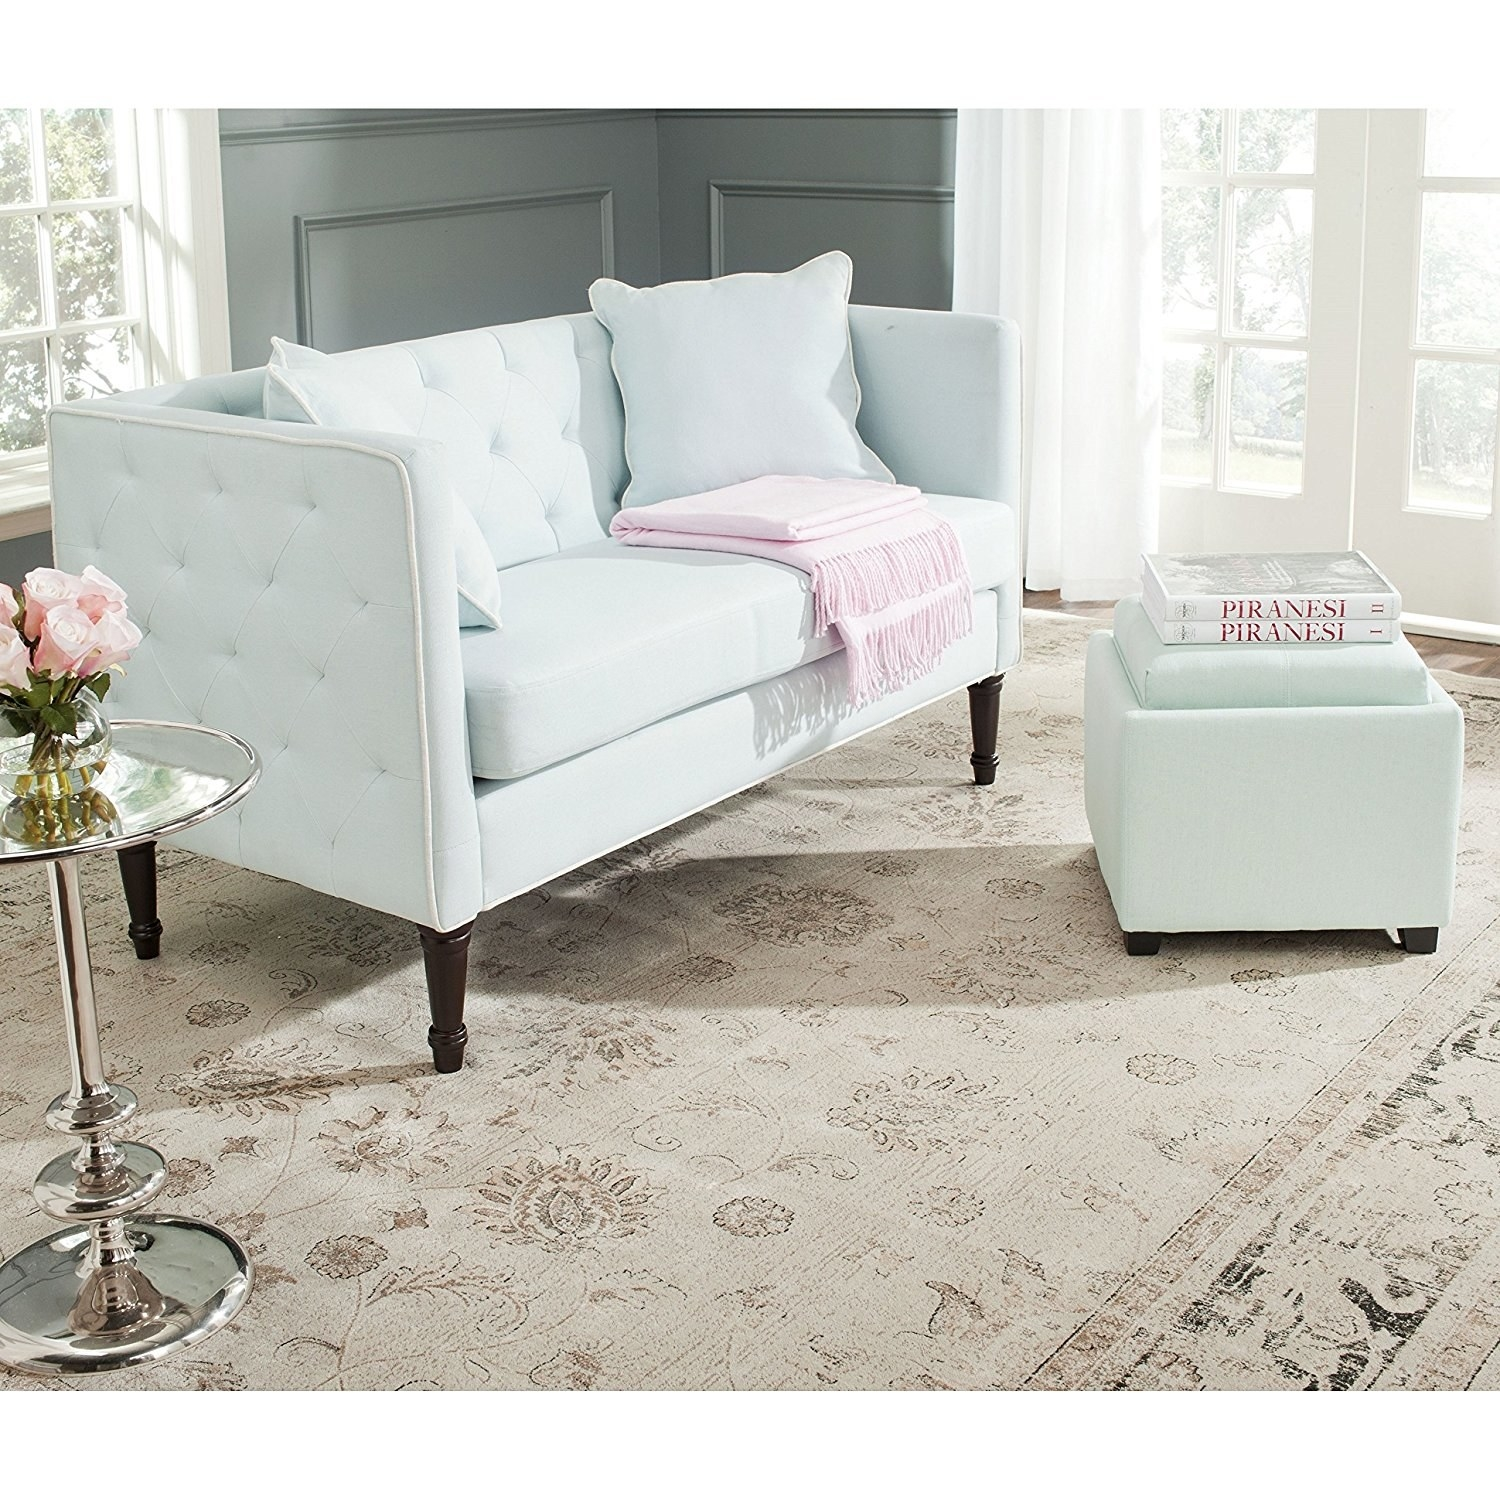 4. A powder blue sette designed for tea parties. Tea parties of one to be specific. & 21 Sofas For Anyone Who Doesn\u0027t Have A Lot Of Space